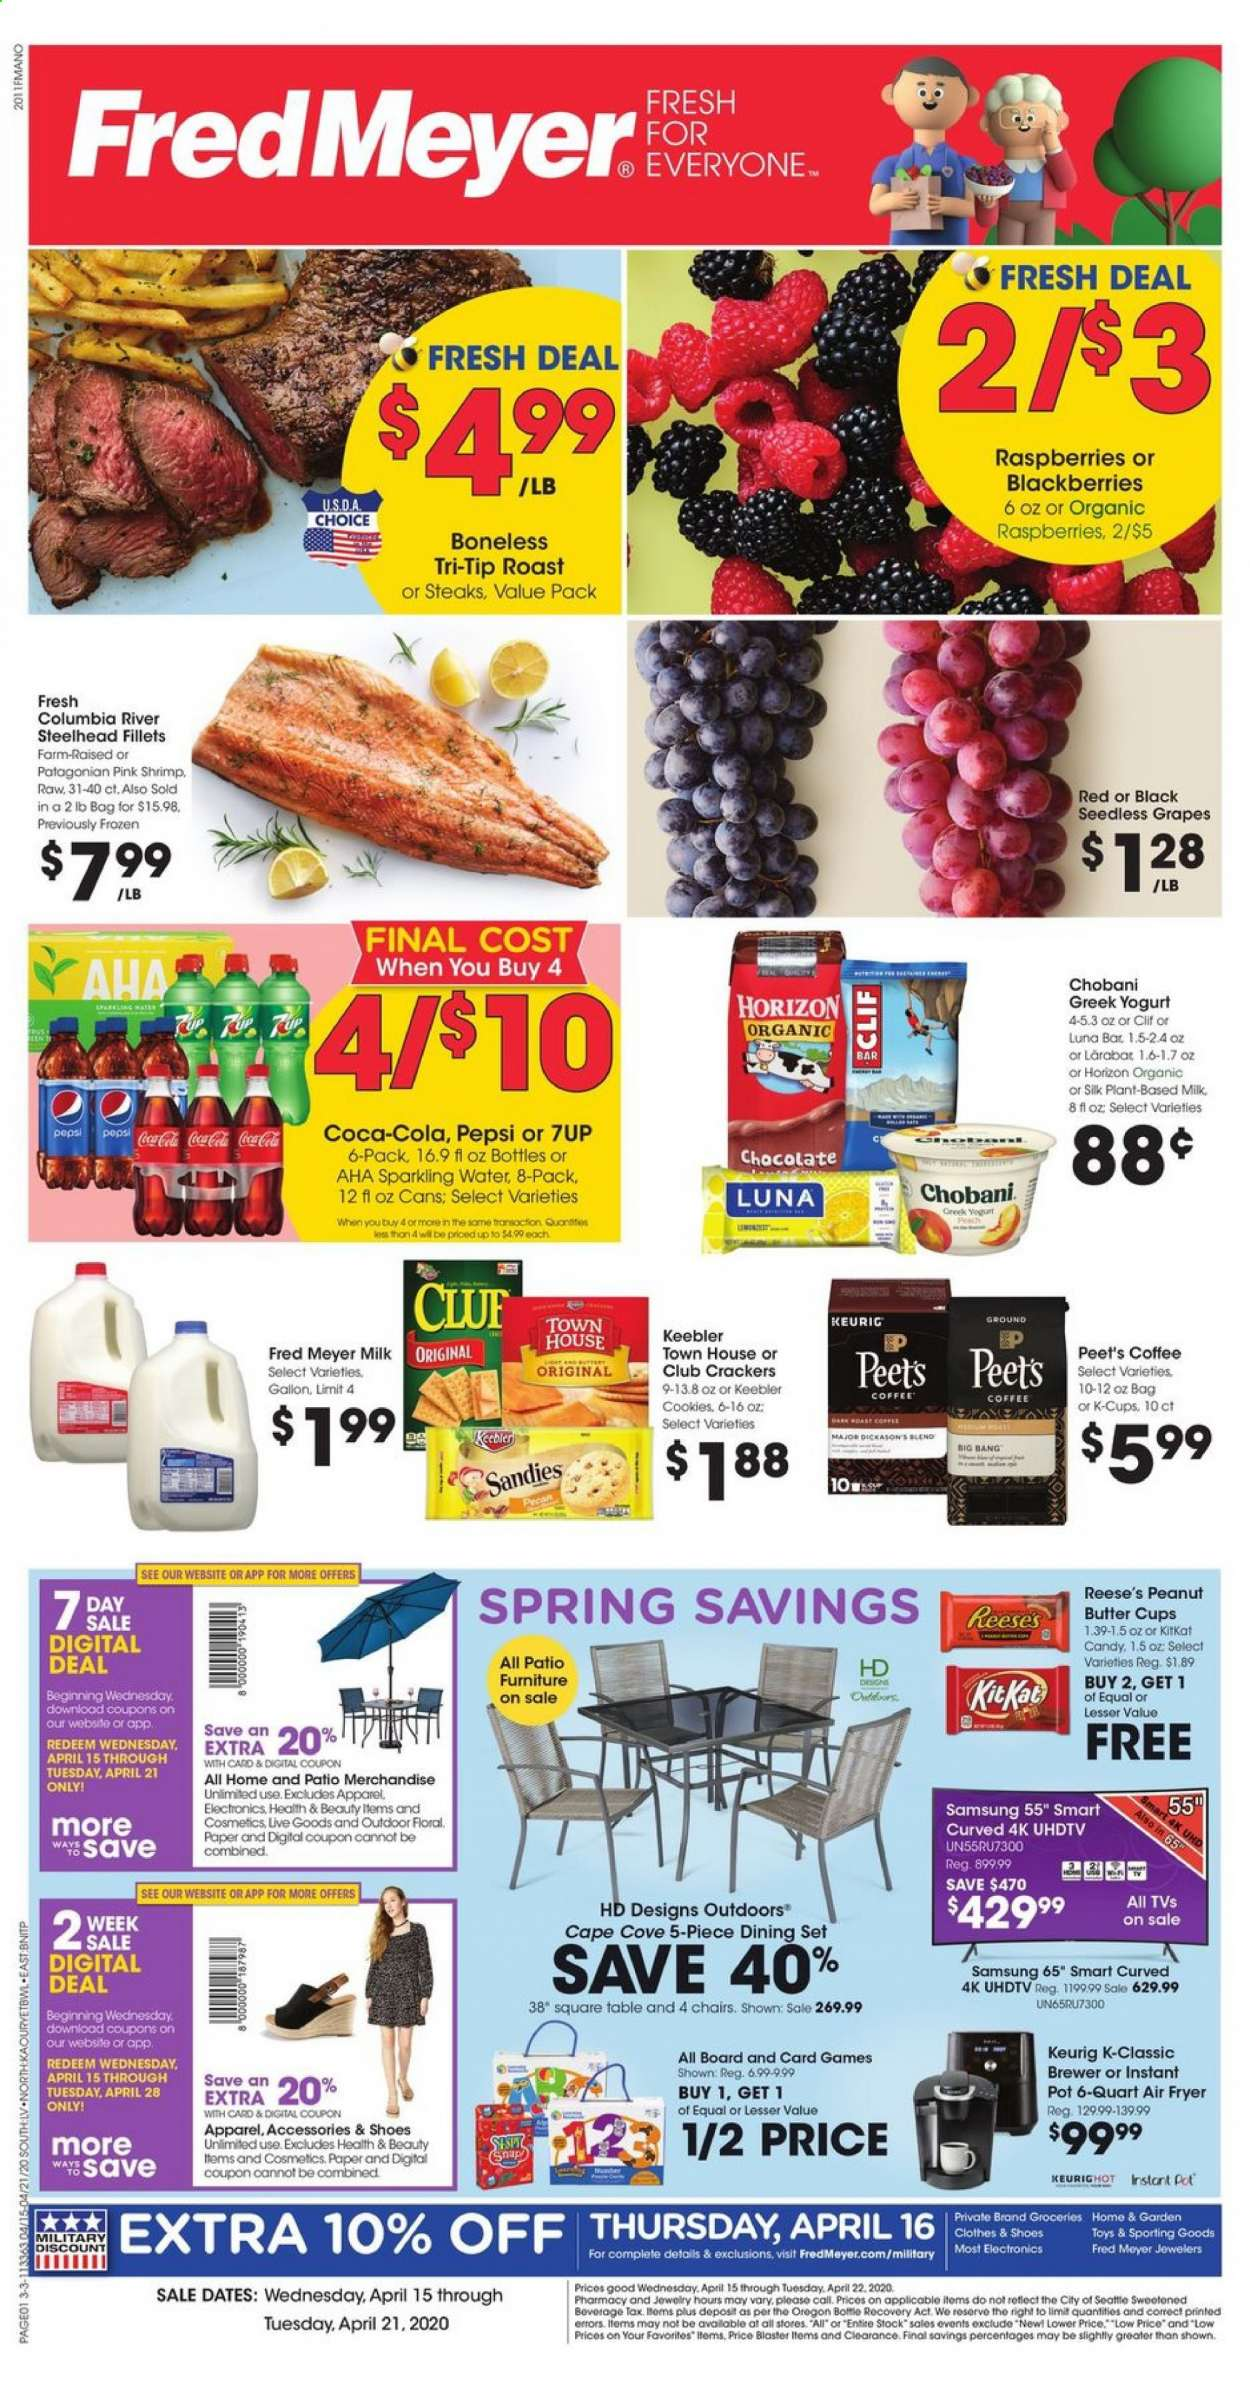 Fred Meyer Flyer  - 04.15.2020 - 04.21.2020. Page 1.